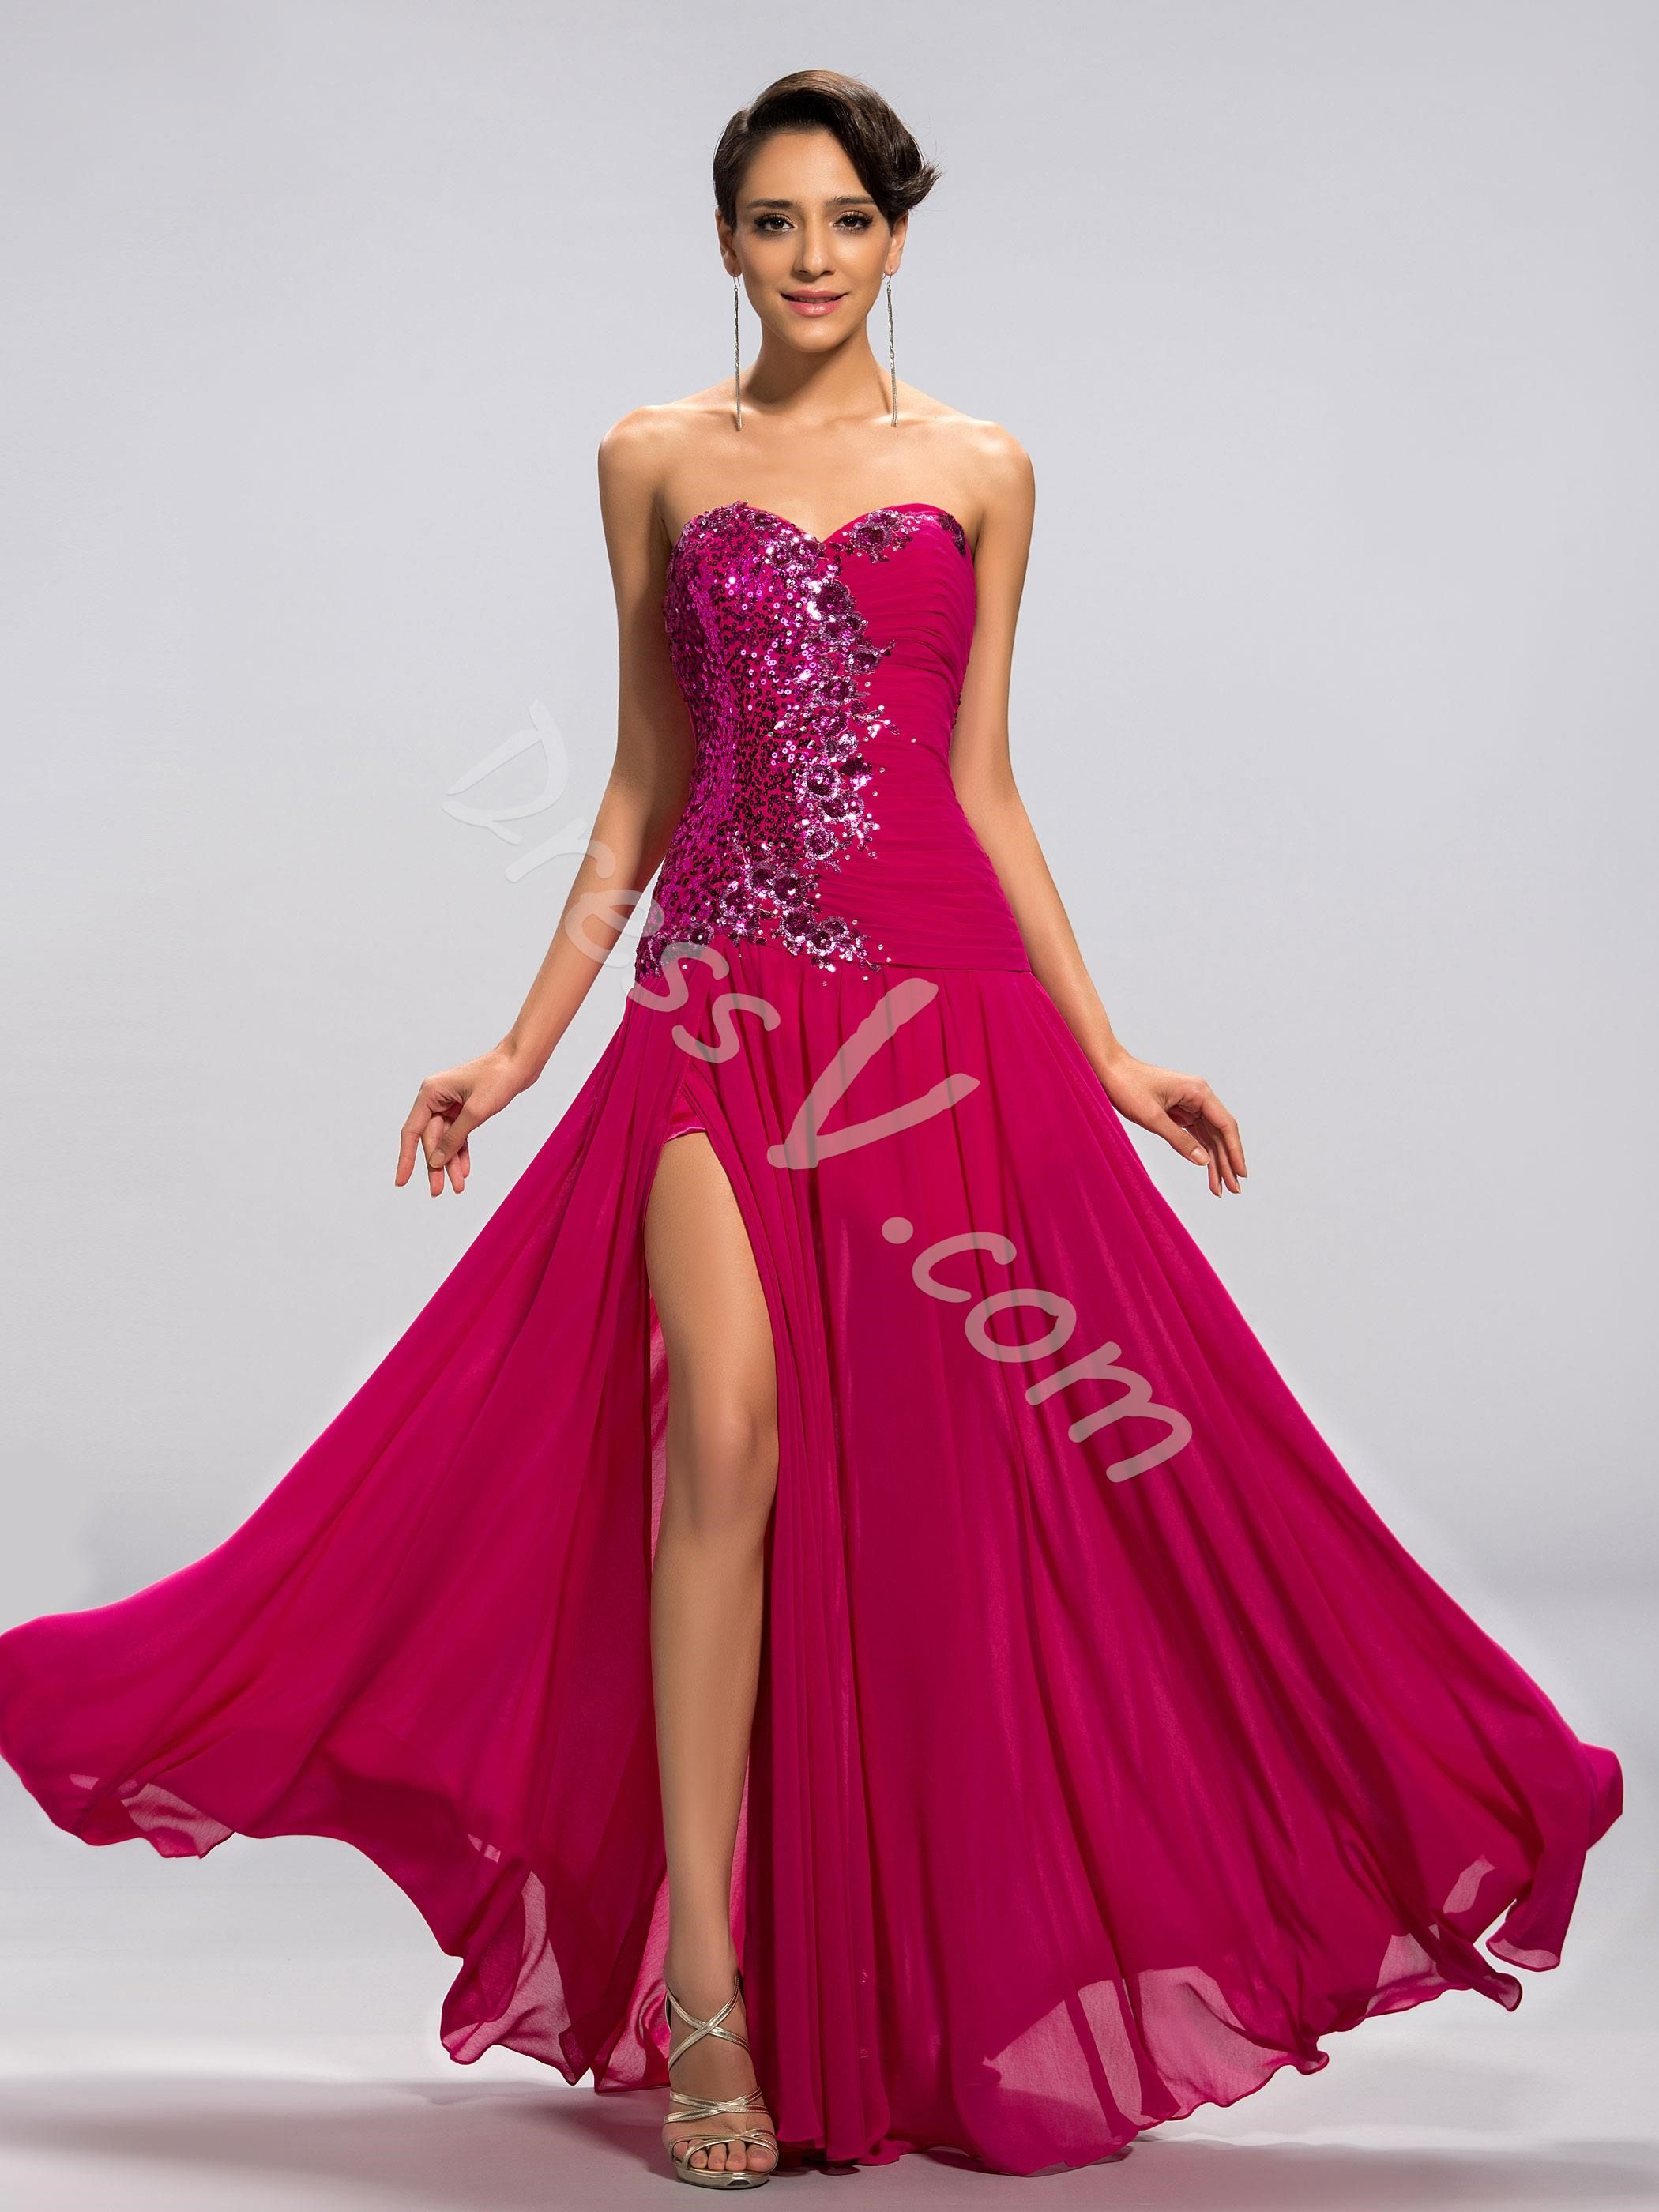 Customized A Line Sweetheart Sequins Front Split Prom Dress Jpg Split Prom Dresses Dresses Popular Prom Dresses [ 2800 x 2100 Pixel ]